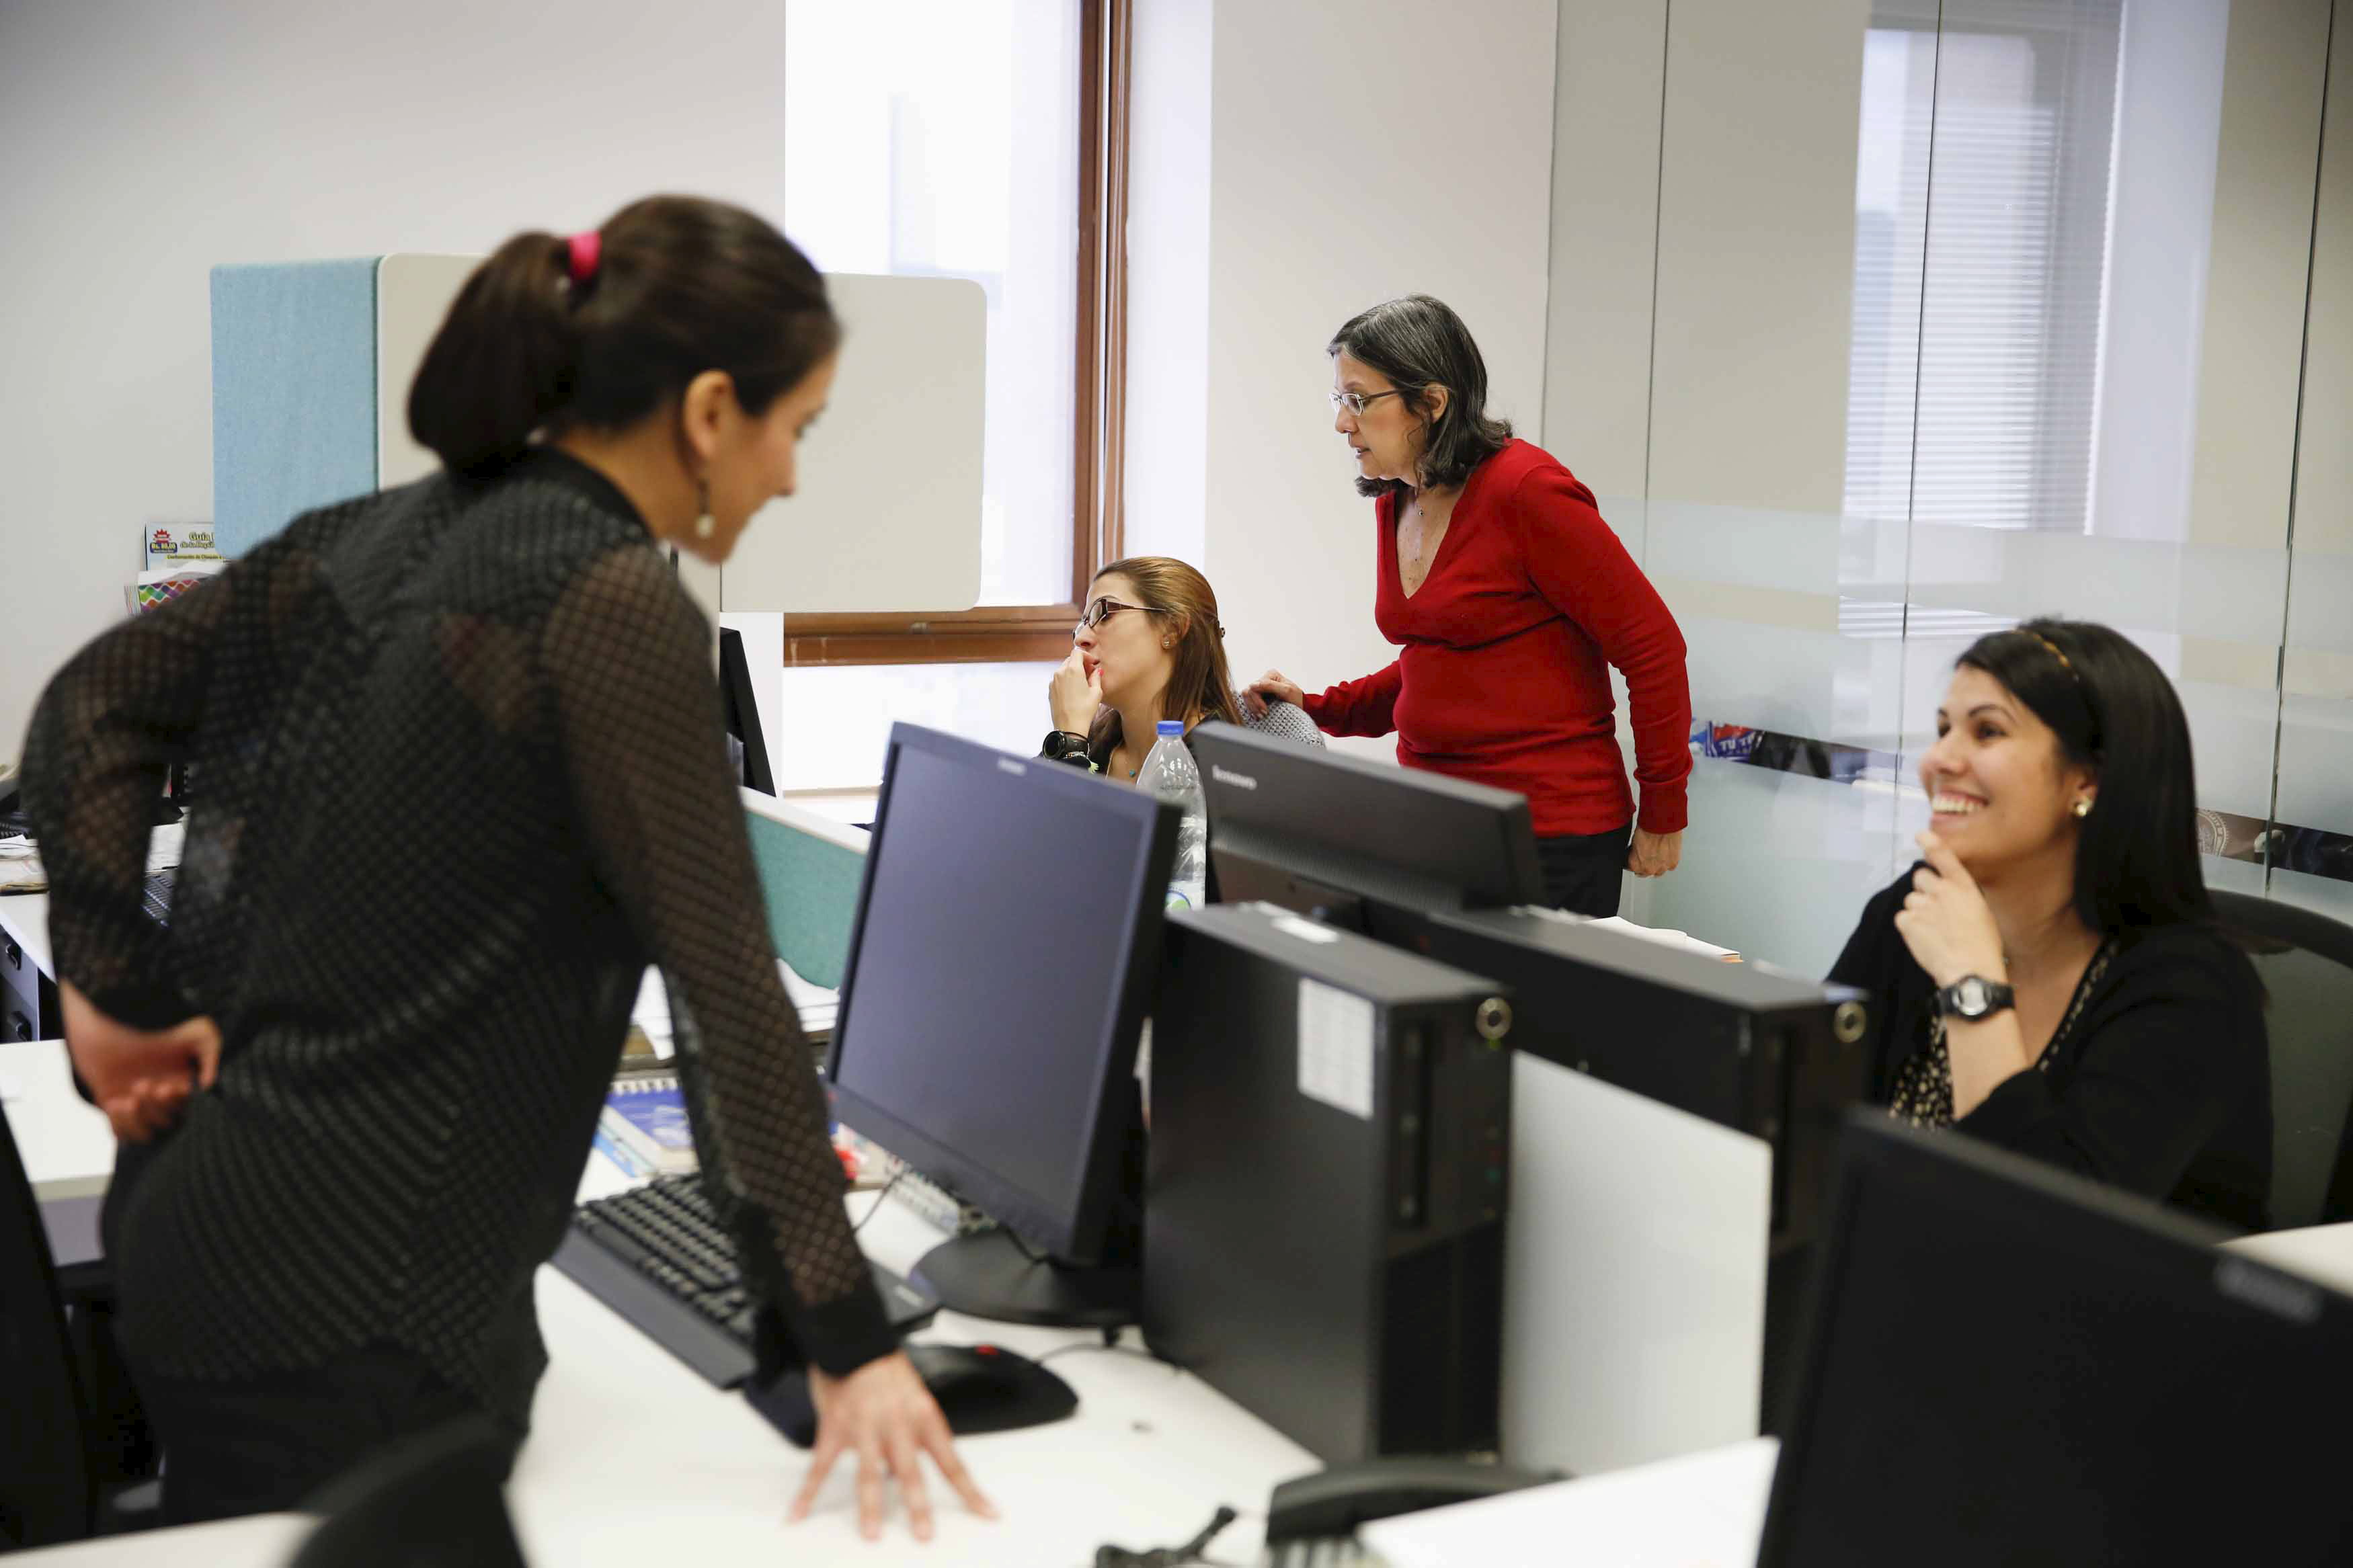 Employees of multinational headhunter Korn/Ferry work at the headquarters office of the company in Caracas